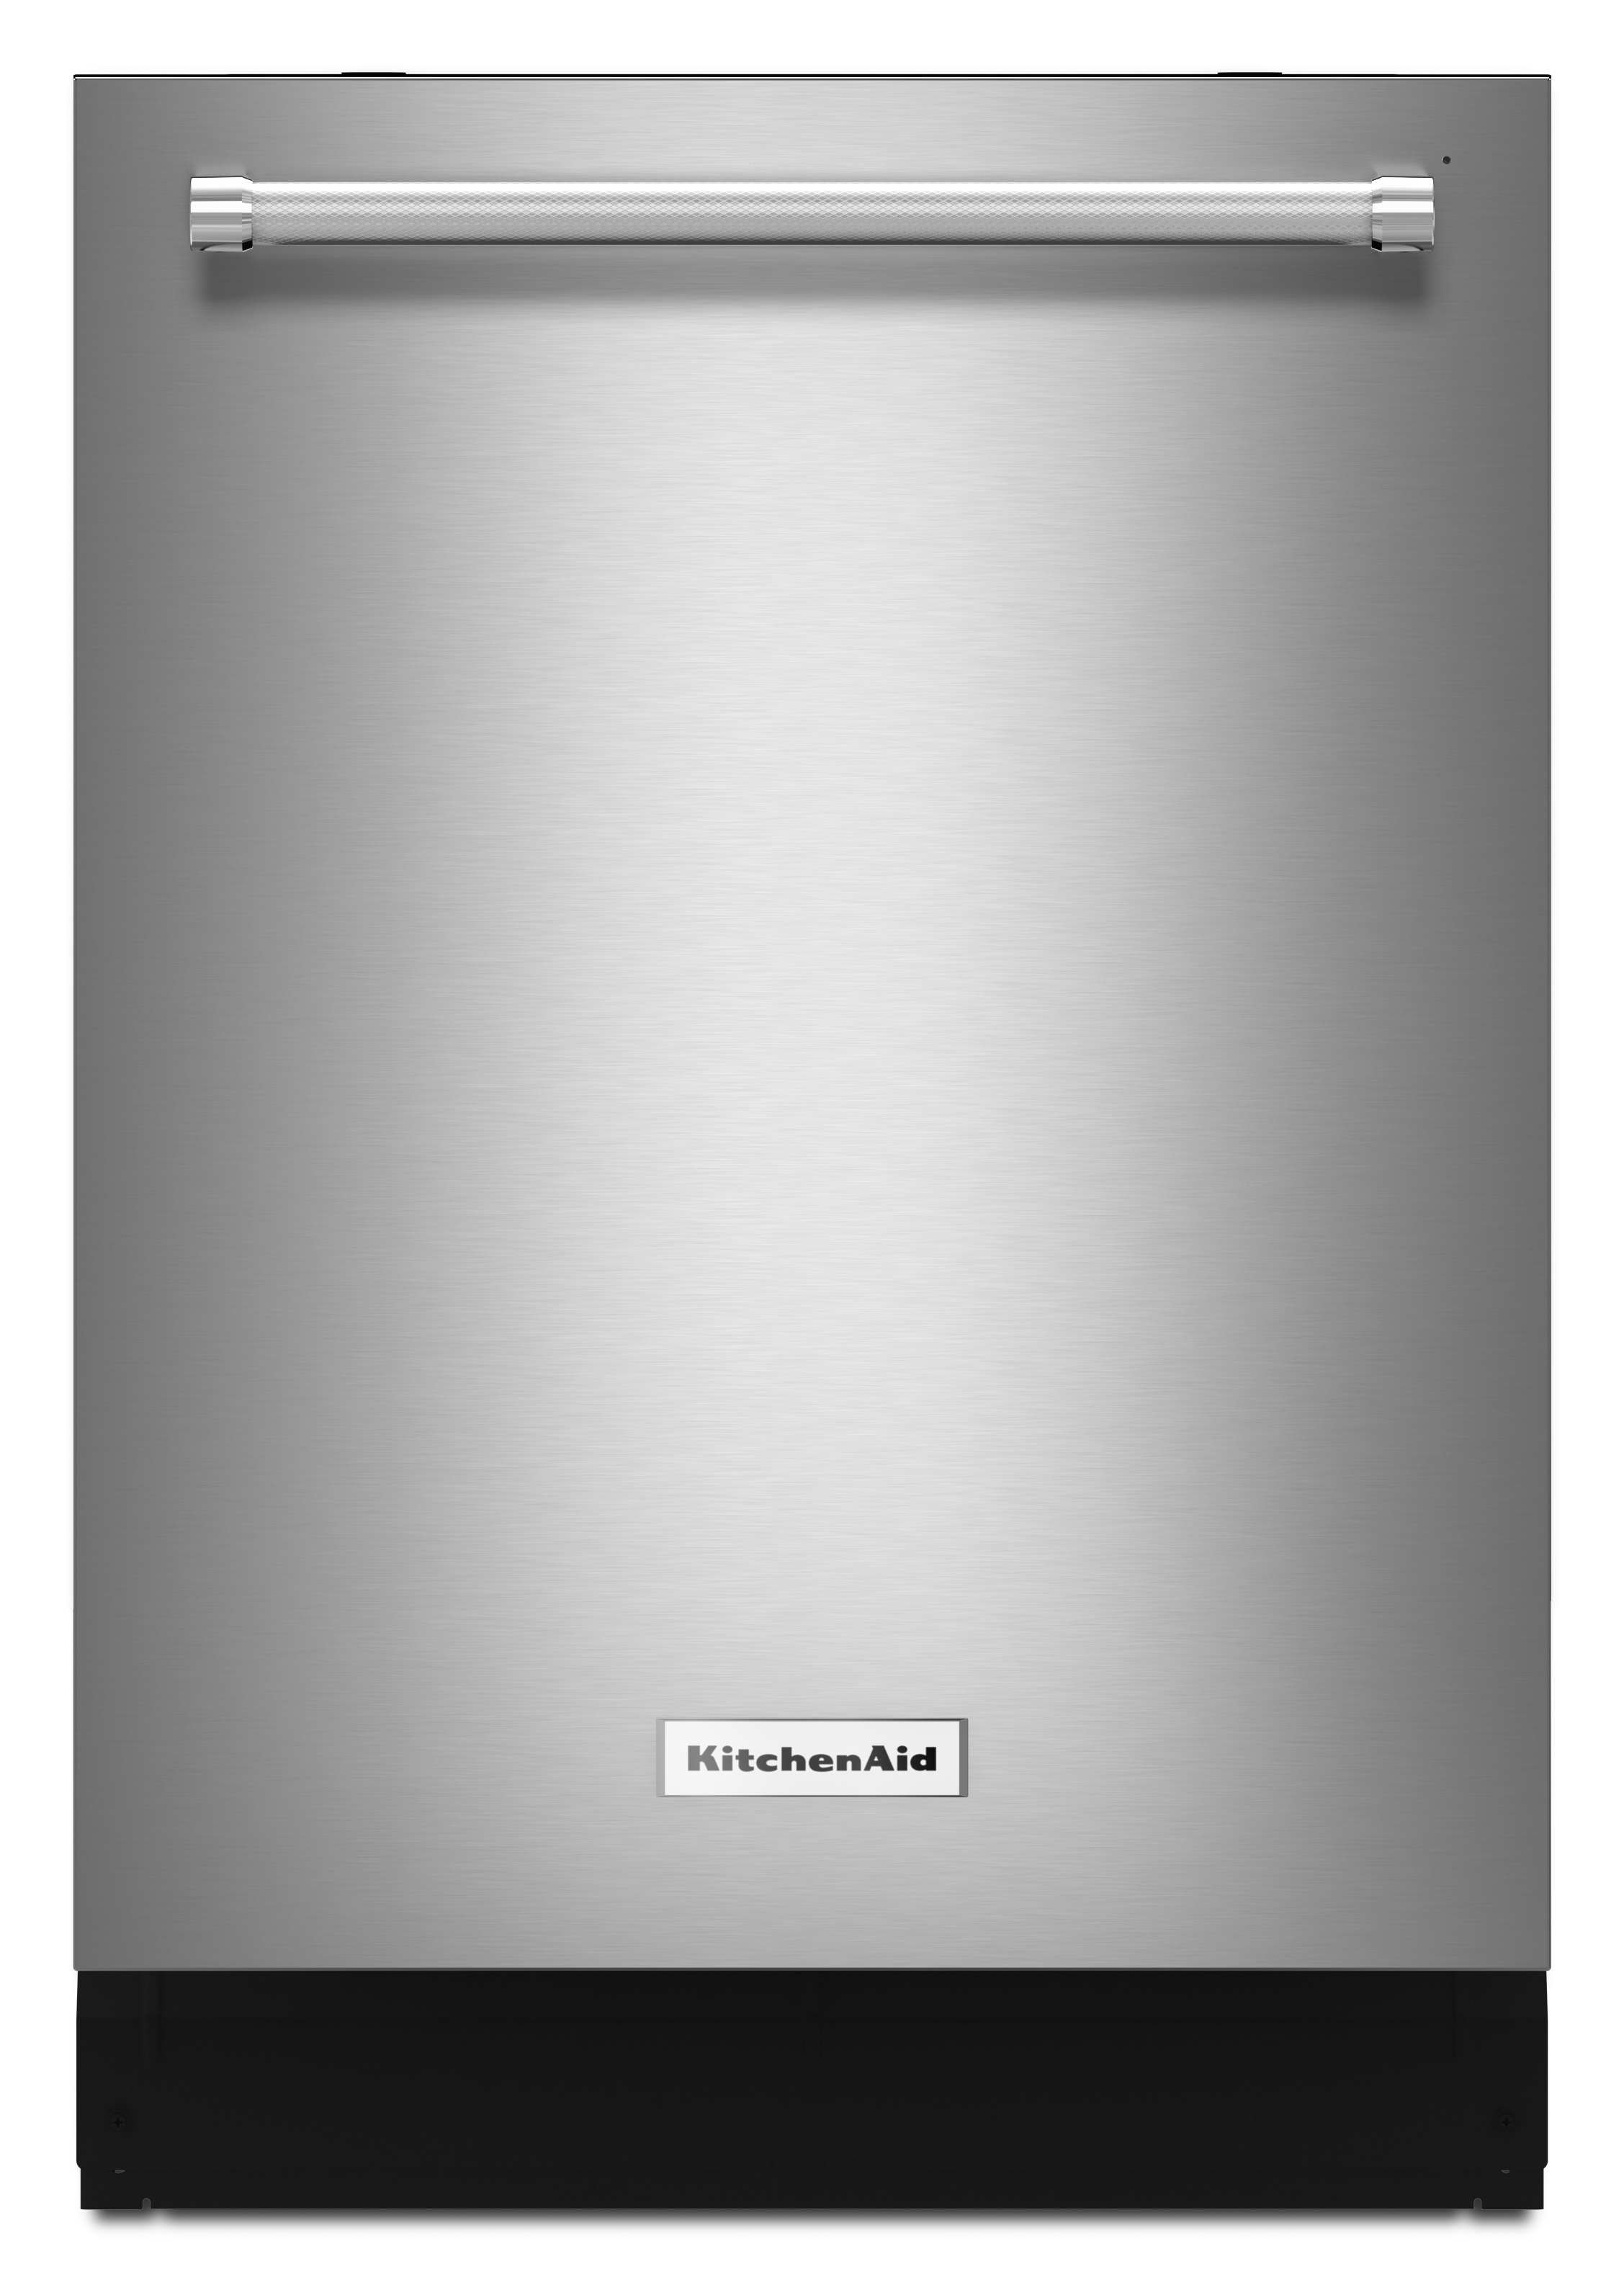 Kitchenaid Top Control Dishwasher With Bar Handle Stainless Steel